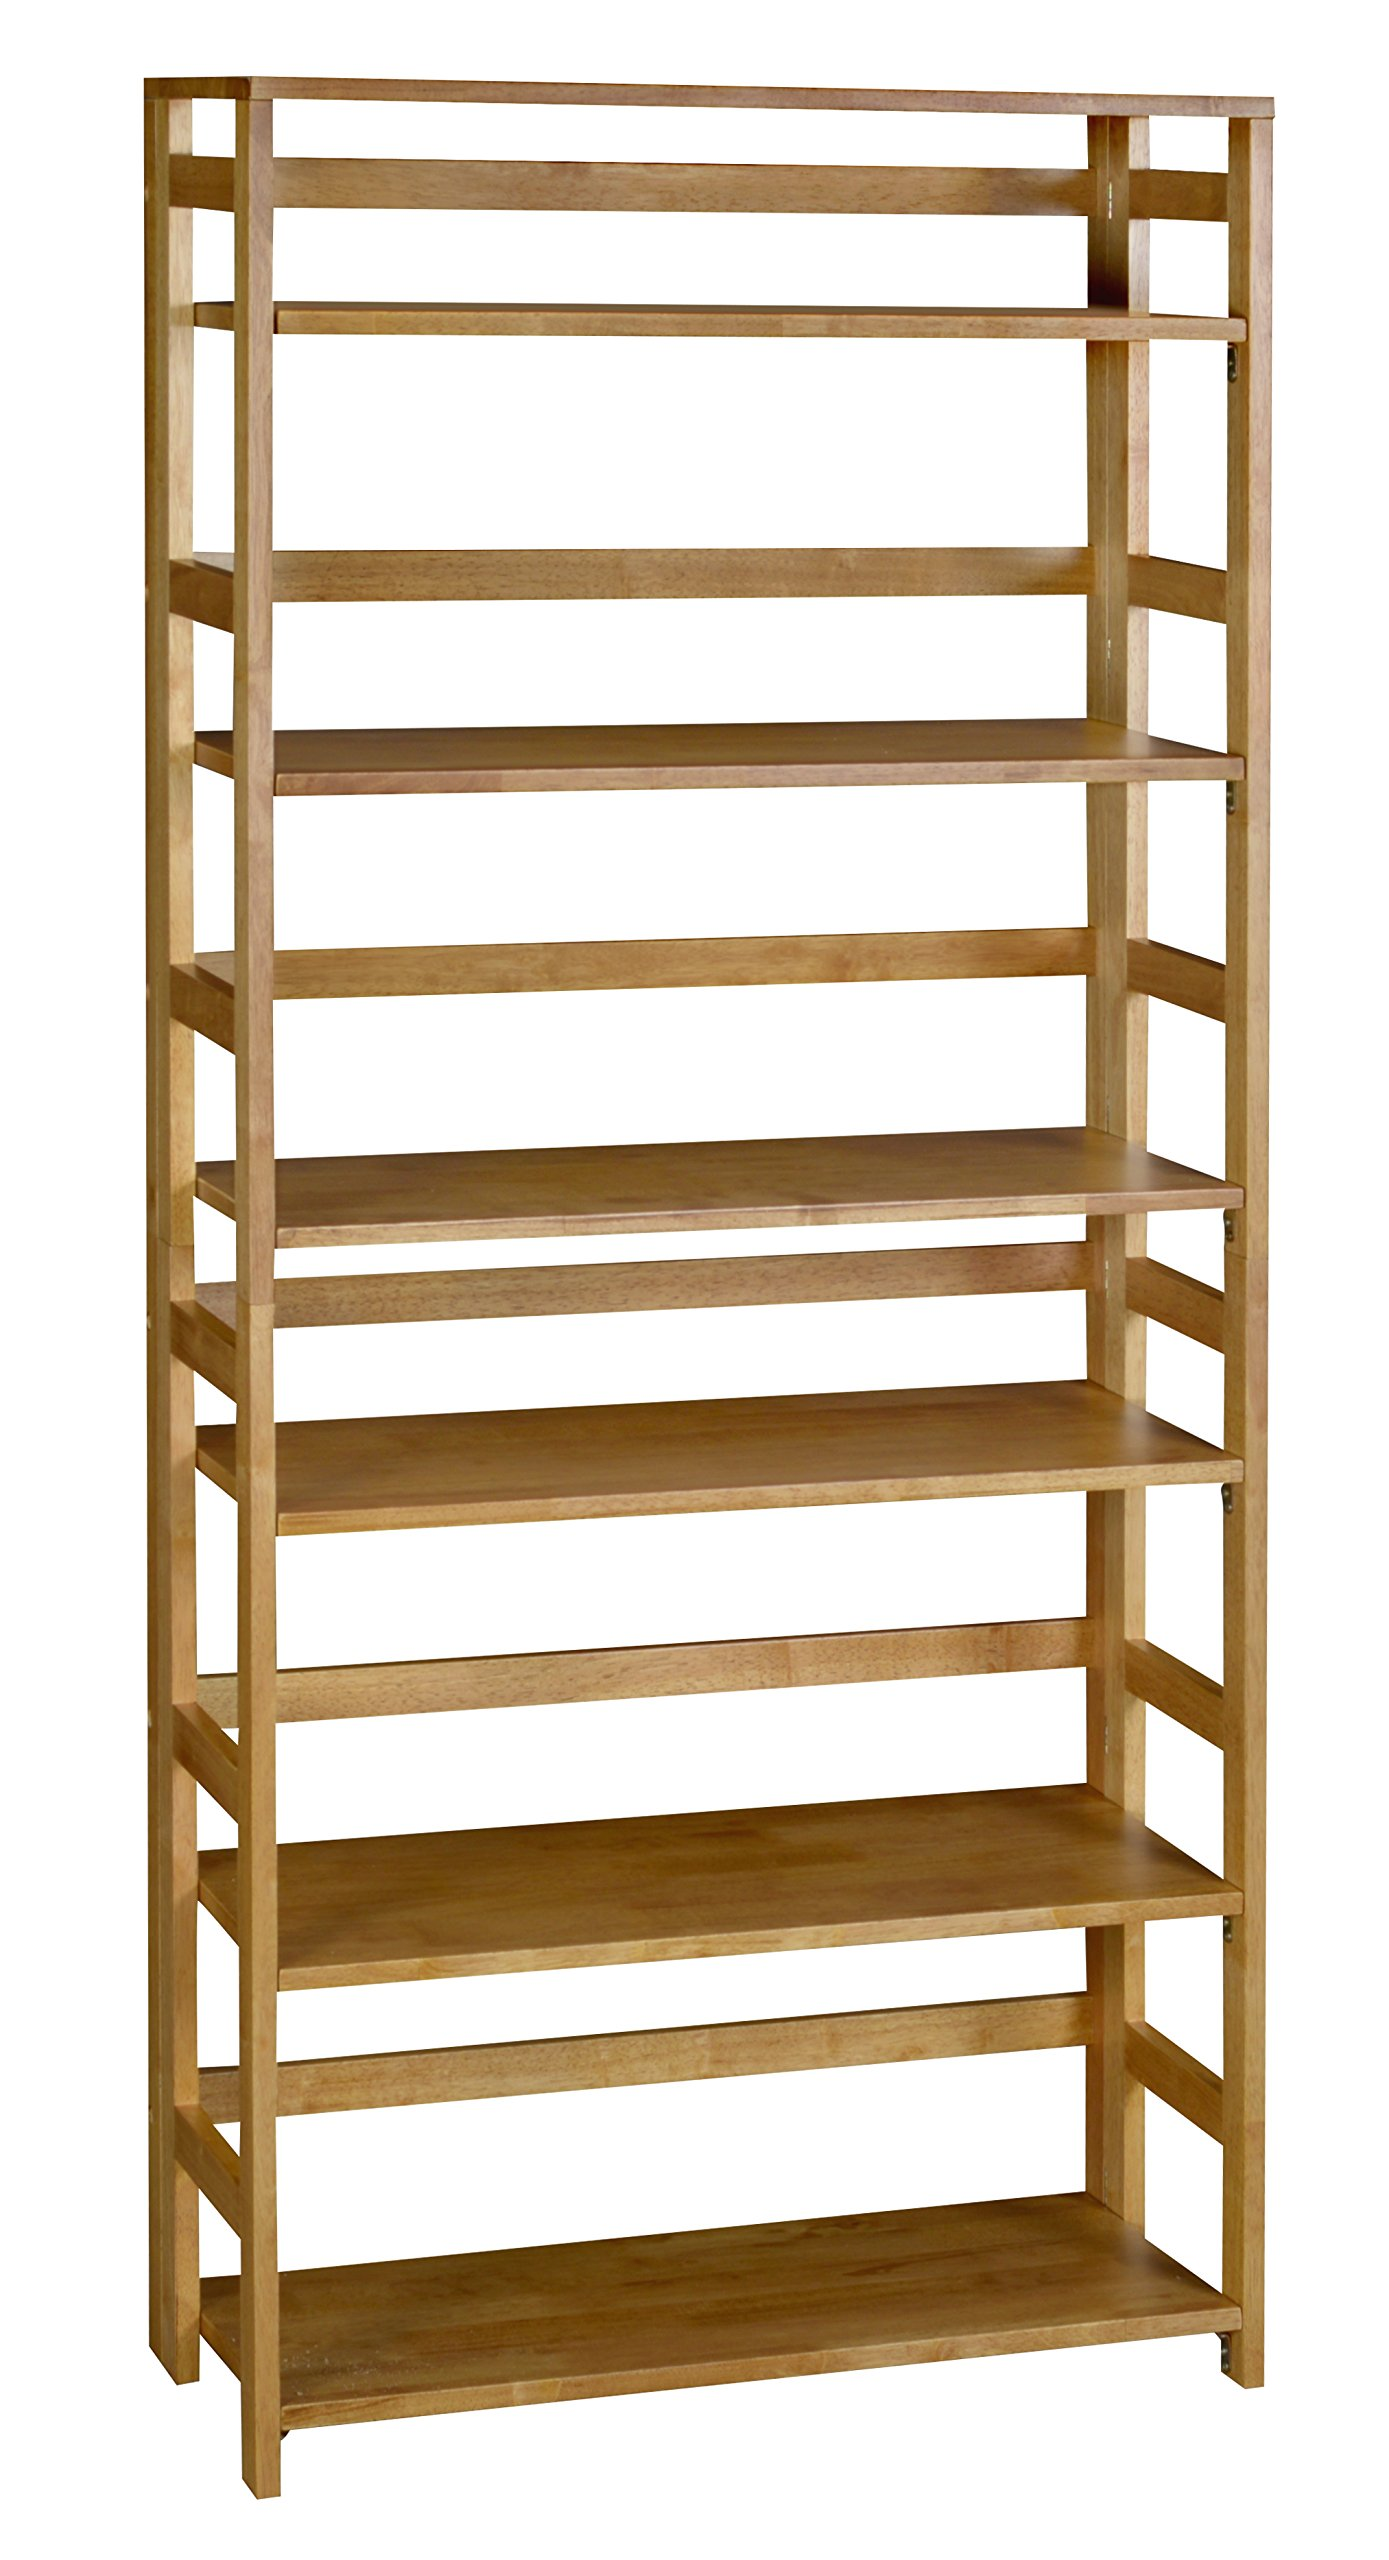 Regency Flip Flop 67-inch High Folding Bookcase- Medium Oak - Shelves flip up and whole bookcase folds flat for easy transportation and storage Assembles without tools in less than 5 minutes 6 flip-down shelves and one fixed top shelf - living-room-furniture, living-room, bookcases-bookshelves - 81xrXUv0eVL -